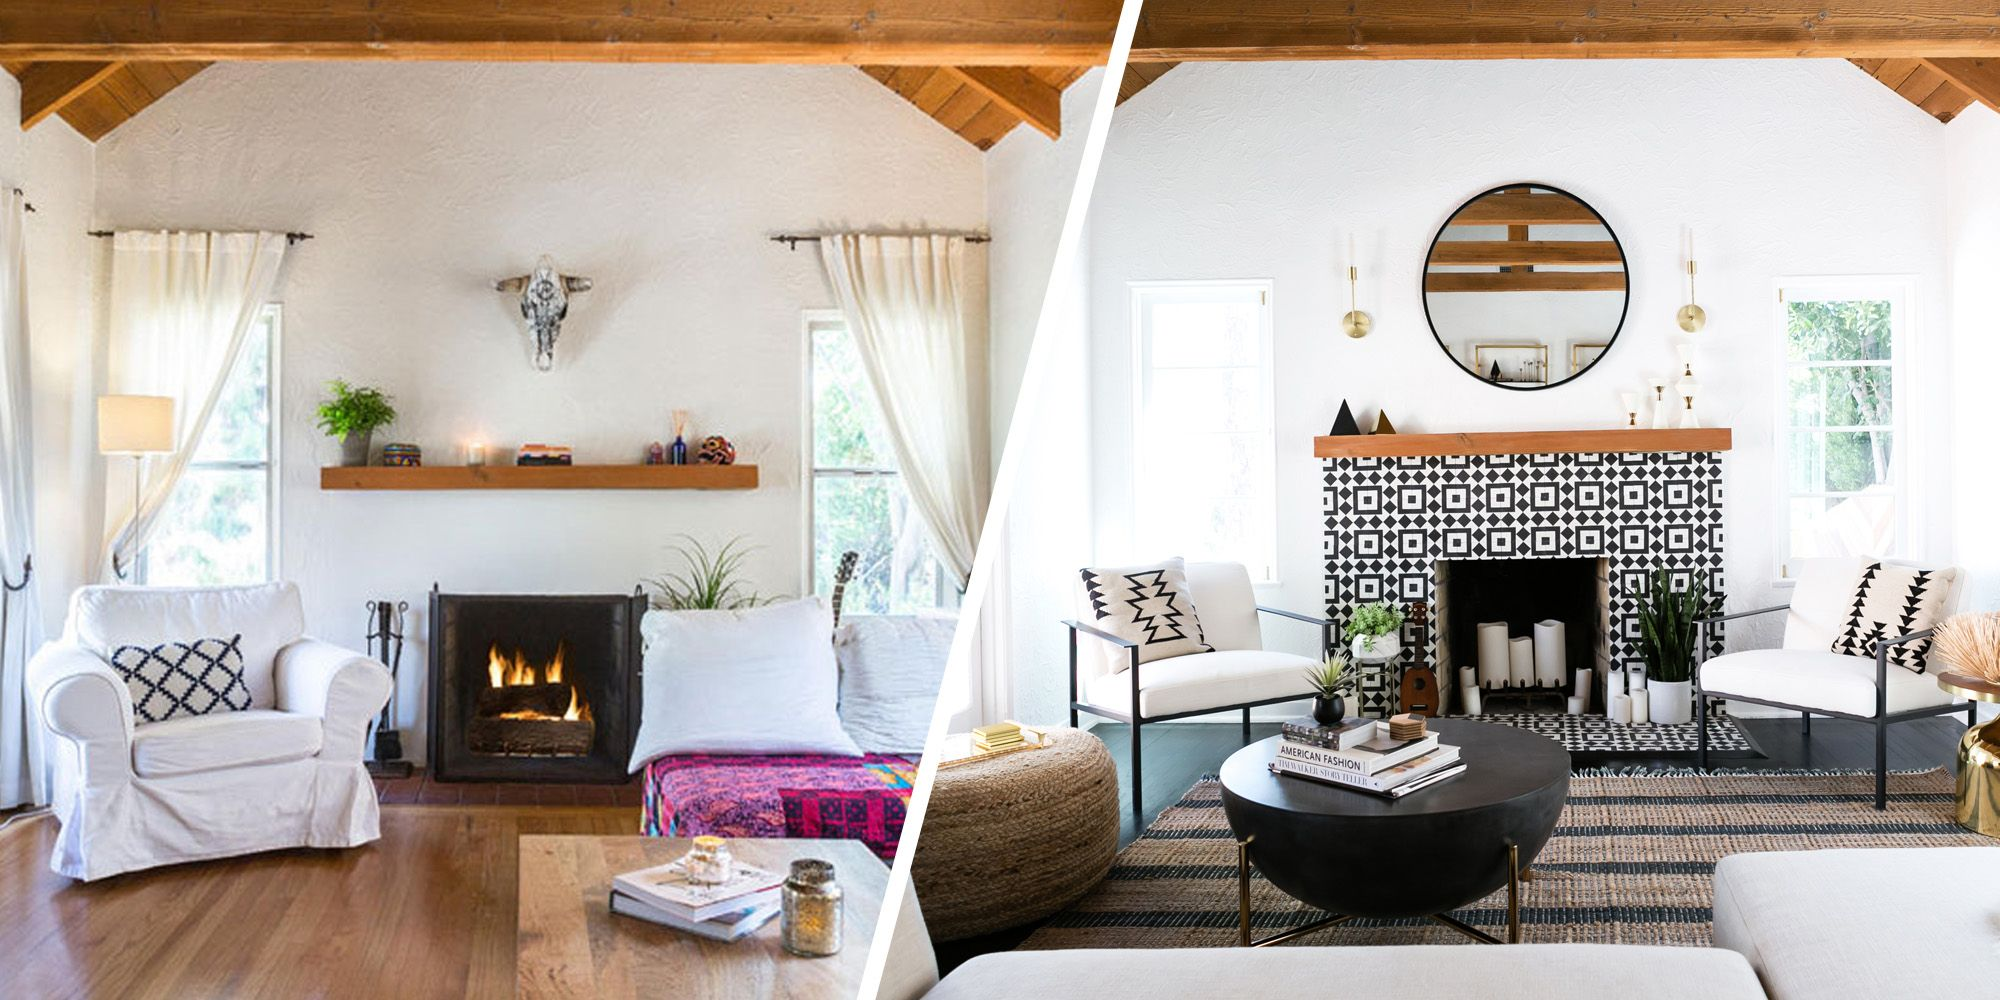 Before + After: A Spanish-Style Home Is Reimagined In True L.A. Fashion